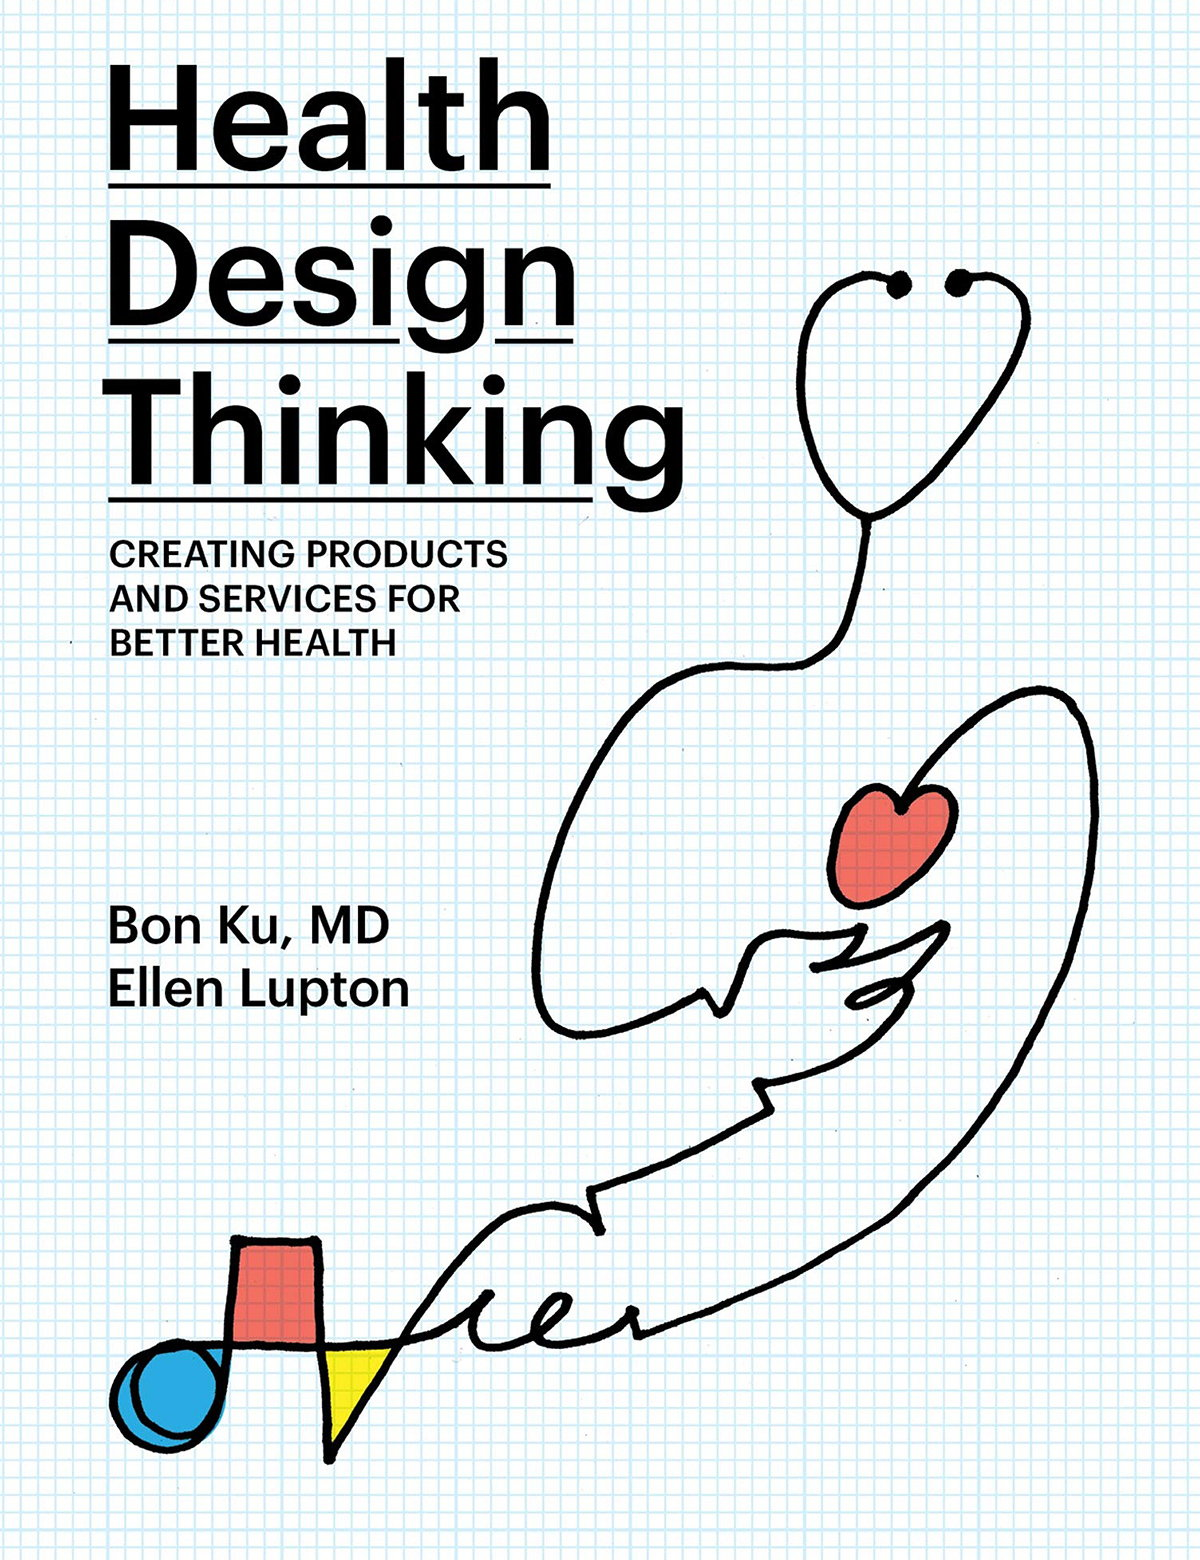 Health Design Thinking - Creating Products and Services for Better Health